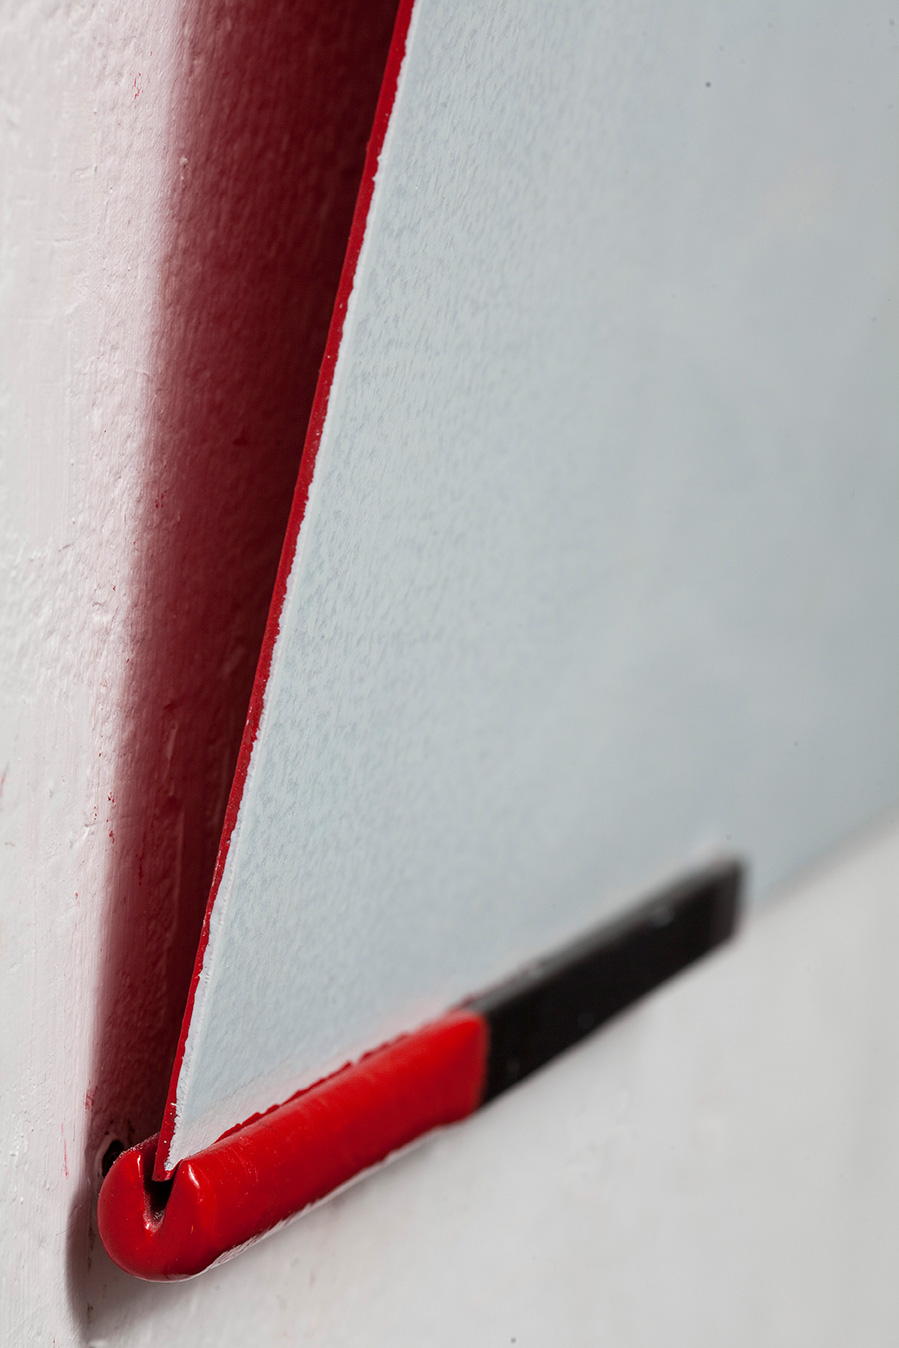 11.%22Untitled%22, 2015, acrylic and epoxi color on metal sheet,110x100cm_detail 1.jpg